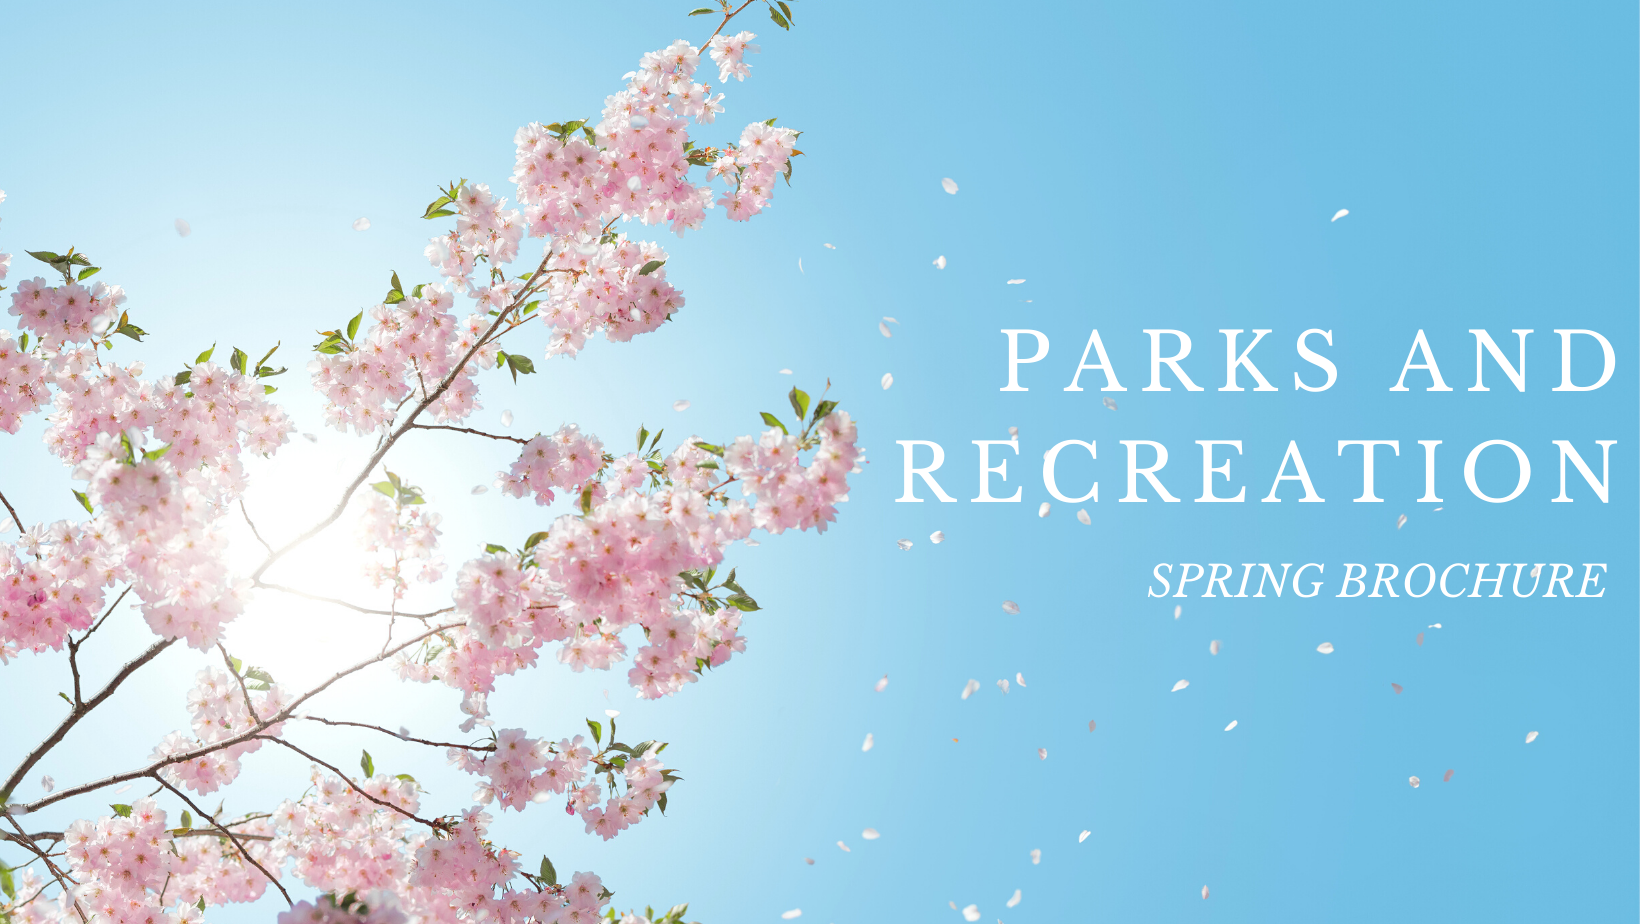 parks and recreation spring brochure